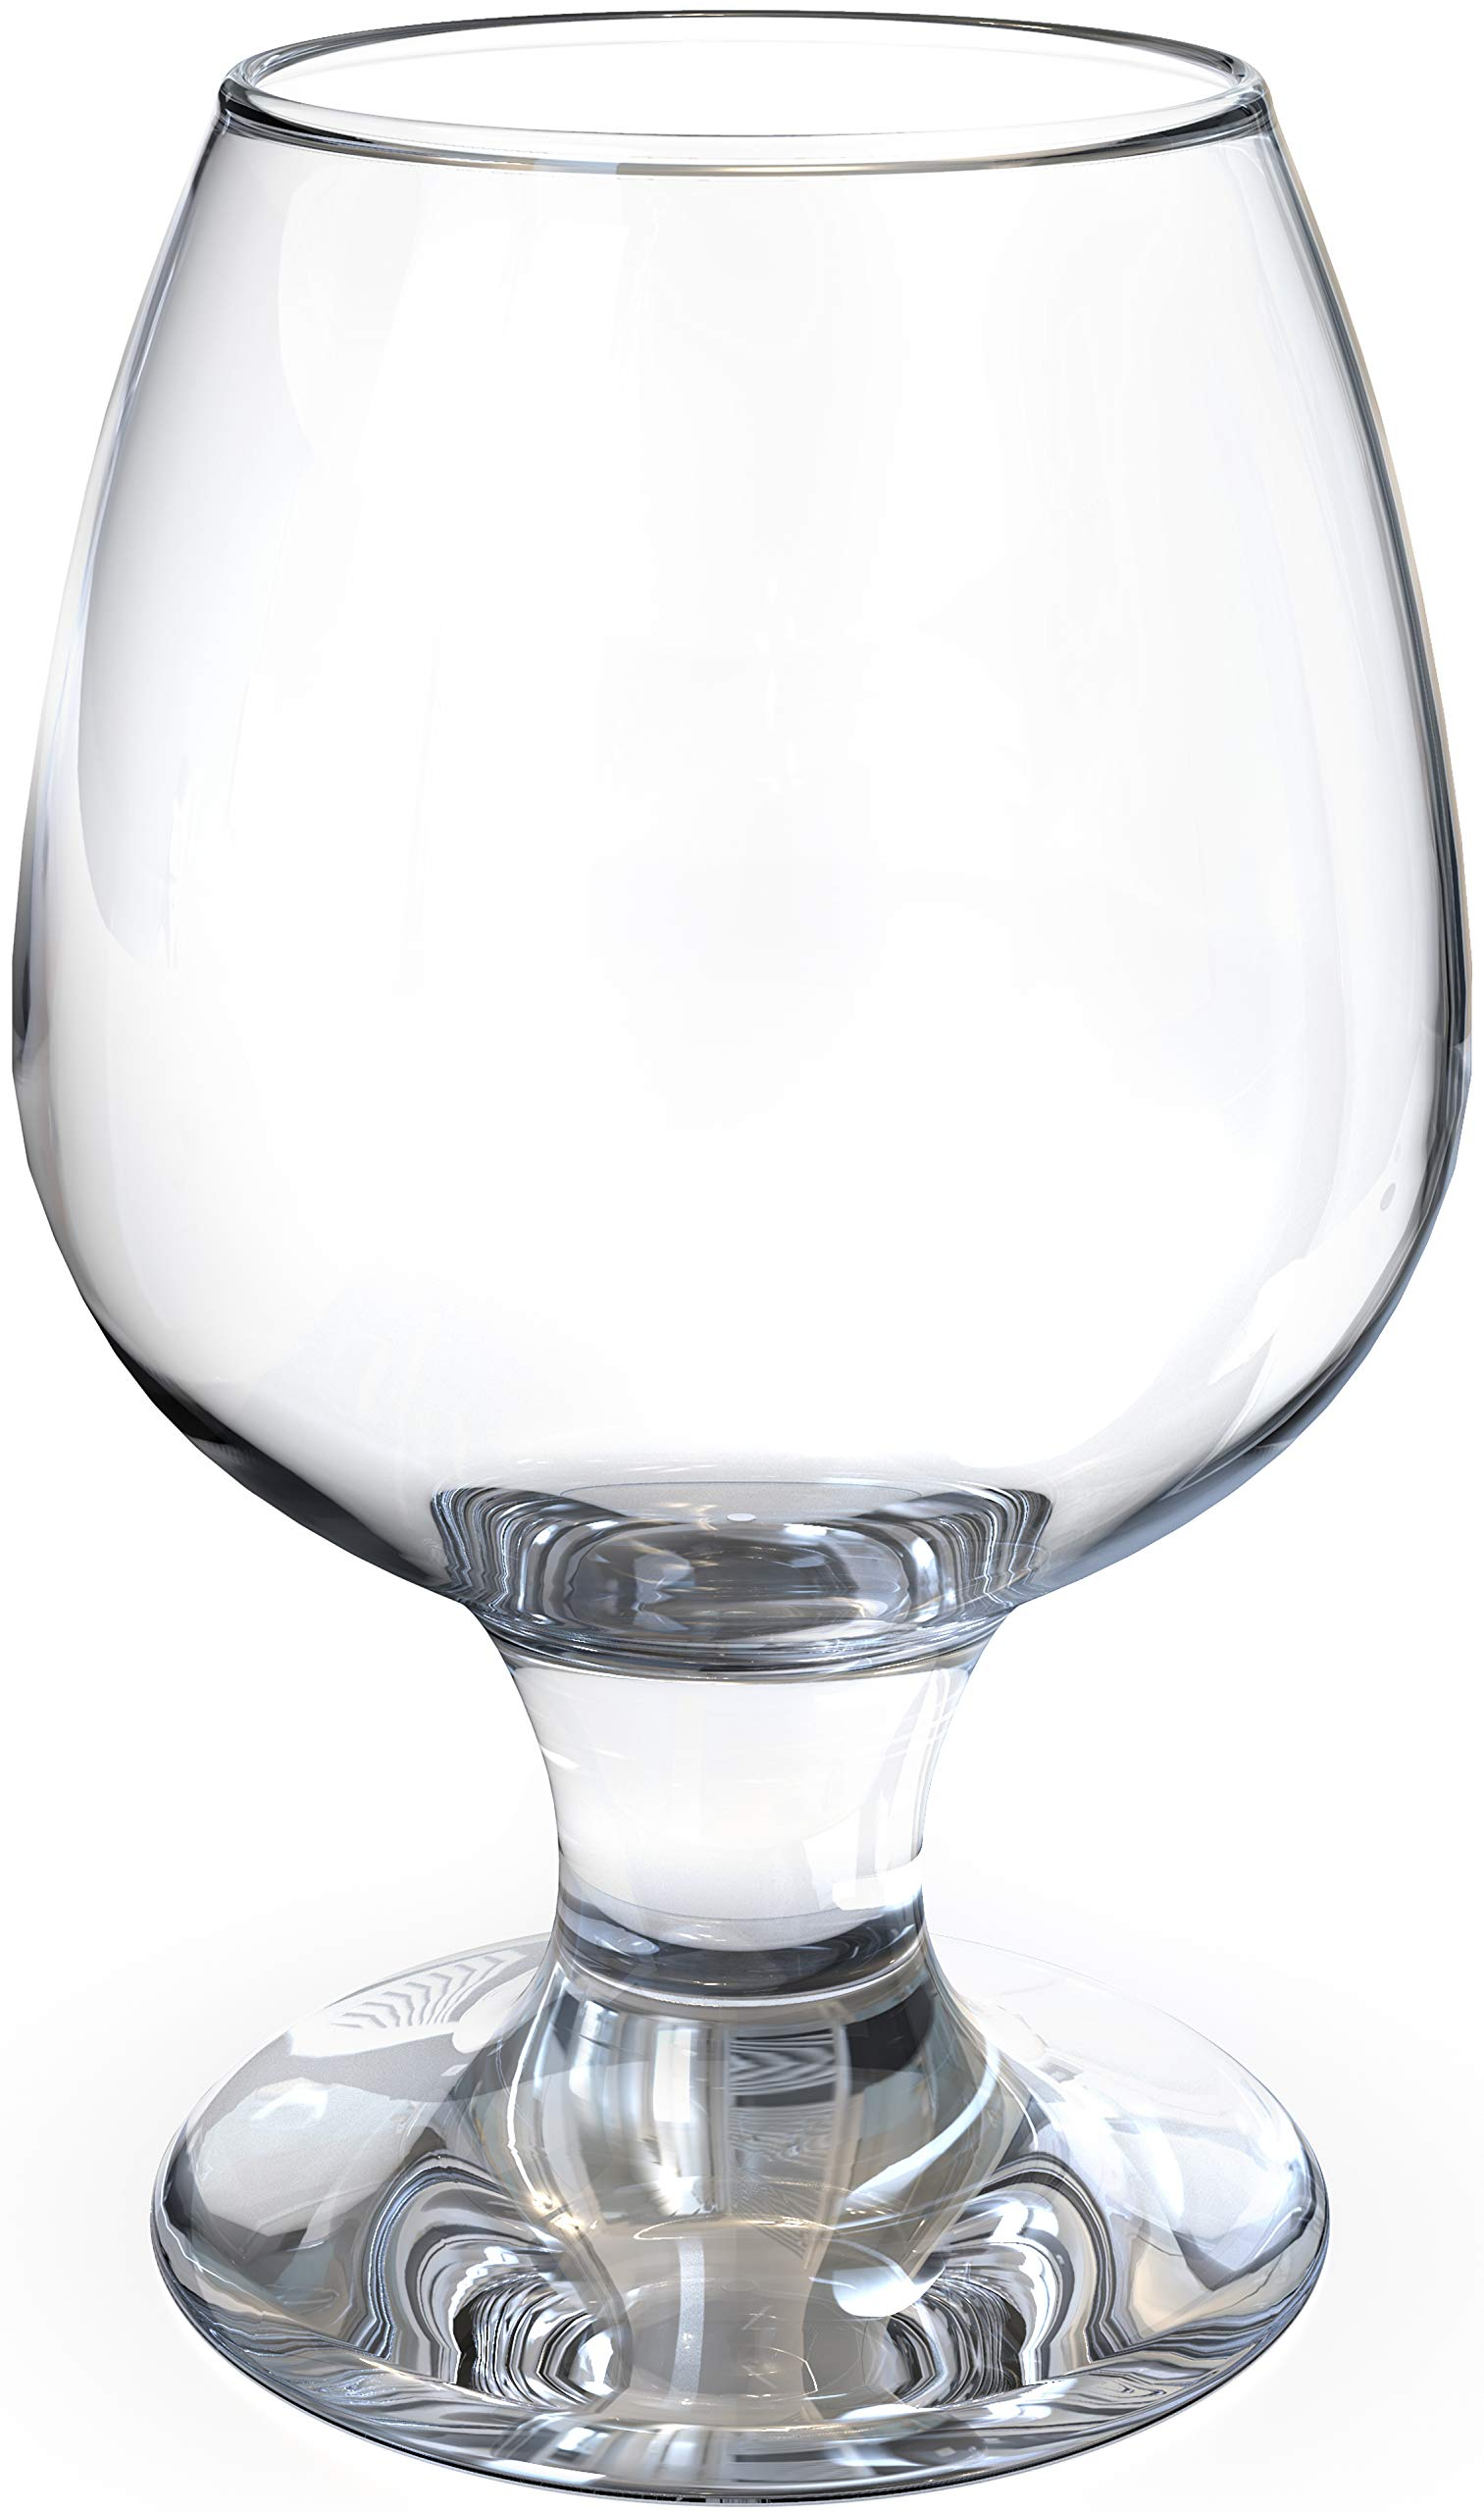 Crystal Snifter Glasses Set of 4 for Cognac Whiskey - New Style Old Fashioned Drink Glasses - Glassware set - Scotch Brandy or Bourbon Tumblers, 8.5 oz by NICELY HOME